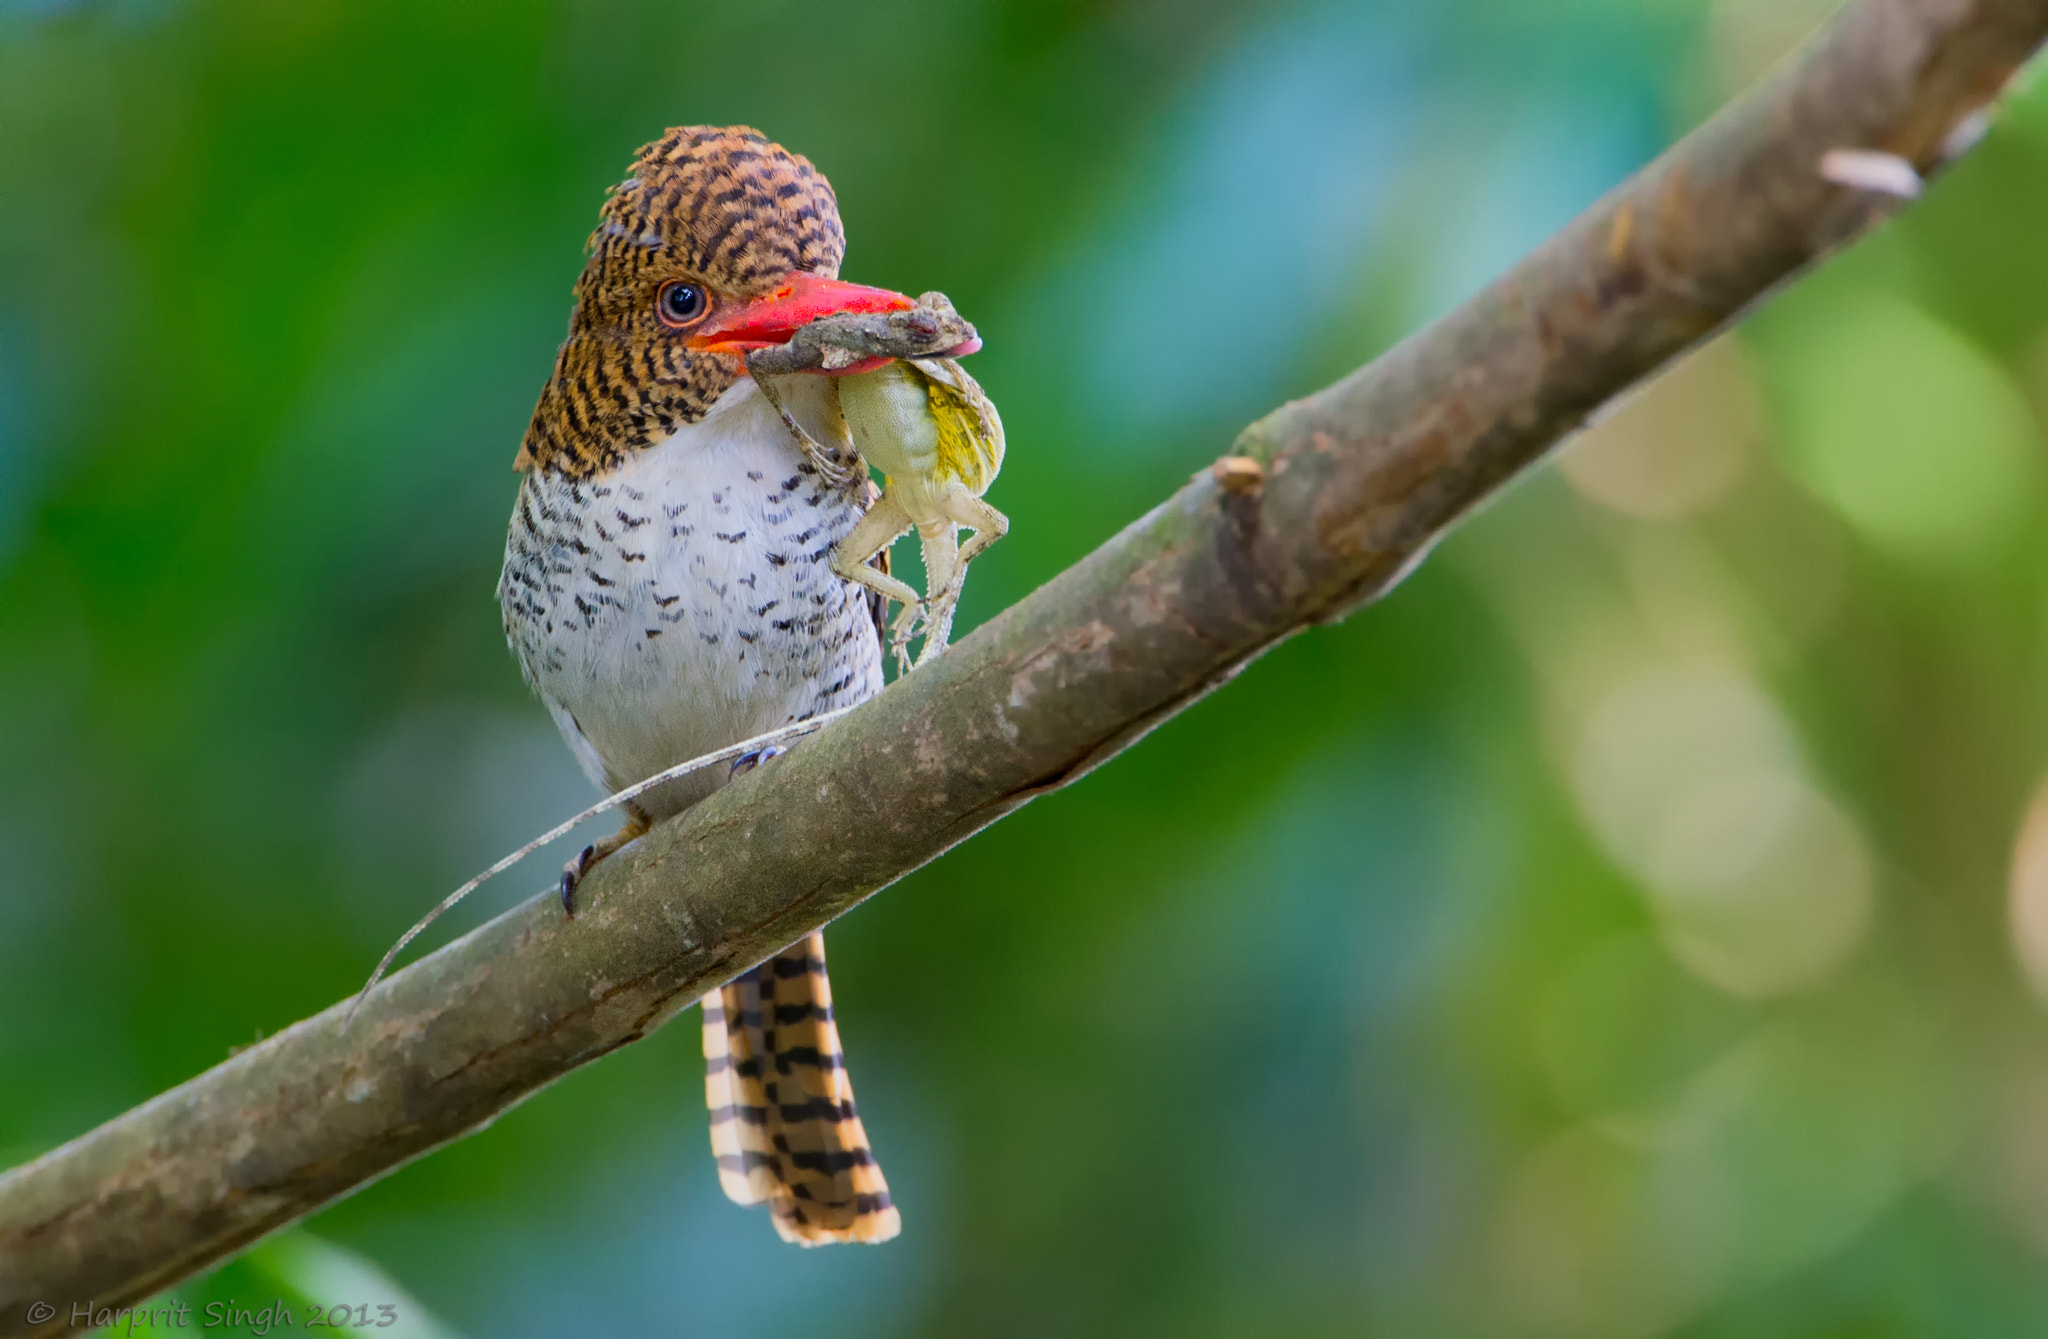 Photograph Banded Kingfisher (Female) with a Flying Lizard meal. by Harprit Singh on 500px